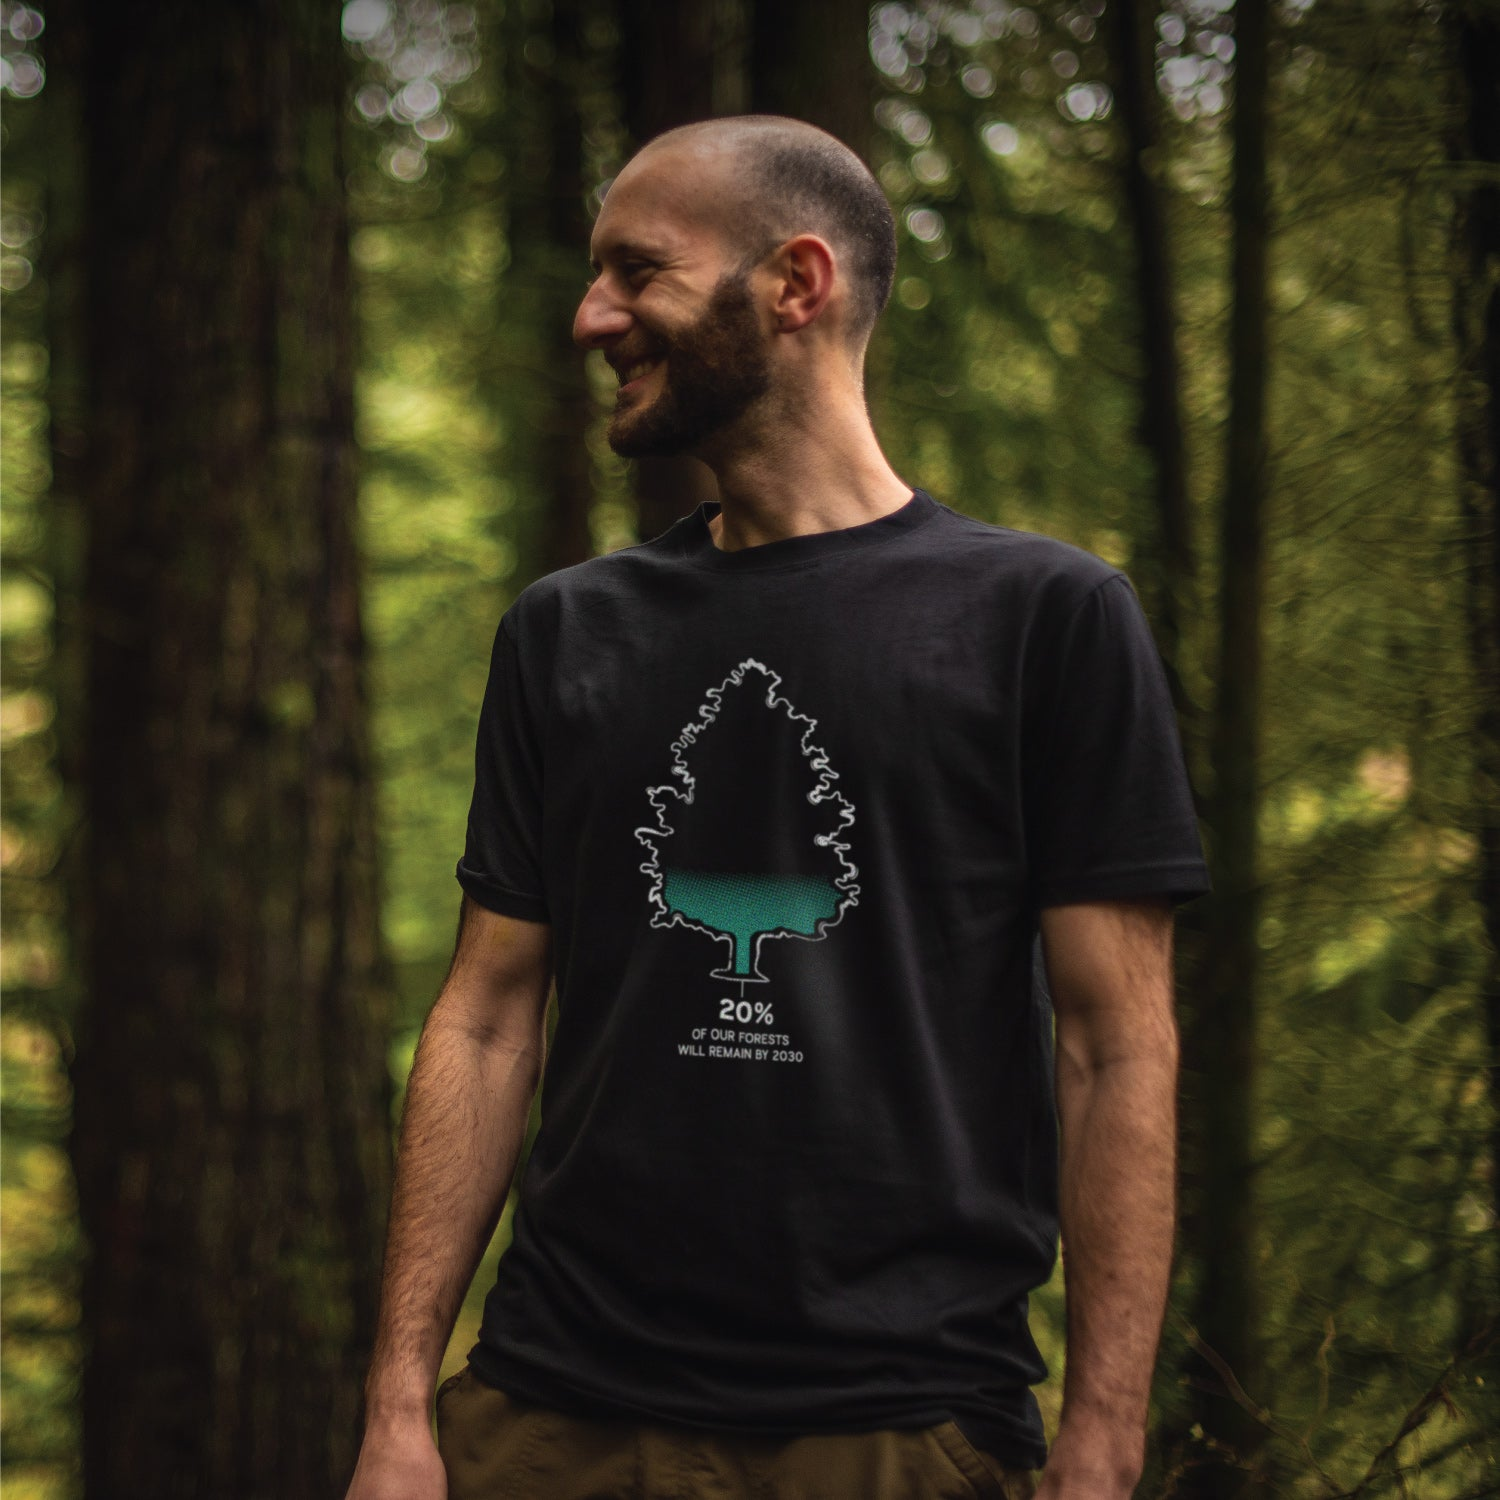 ec920d31 Quality Recycled Apparel | Low-Impact Clothing - Looptworks